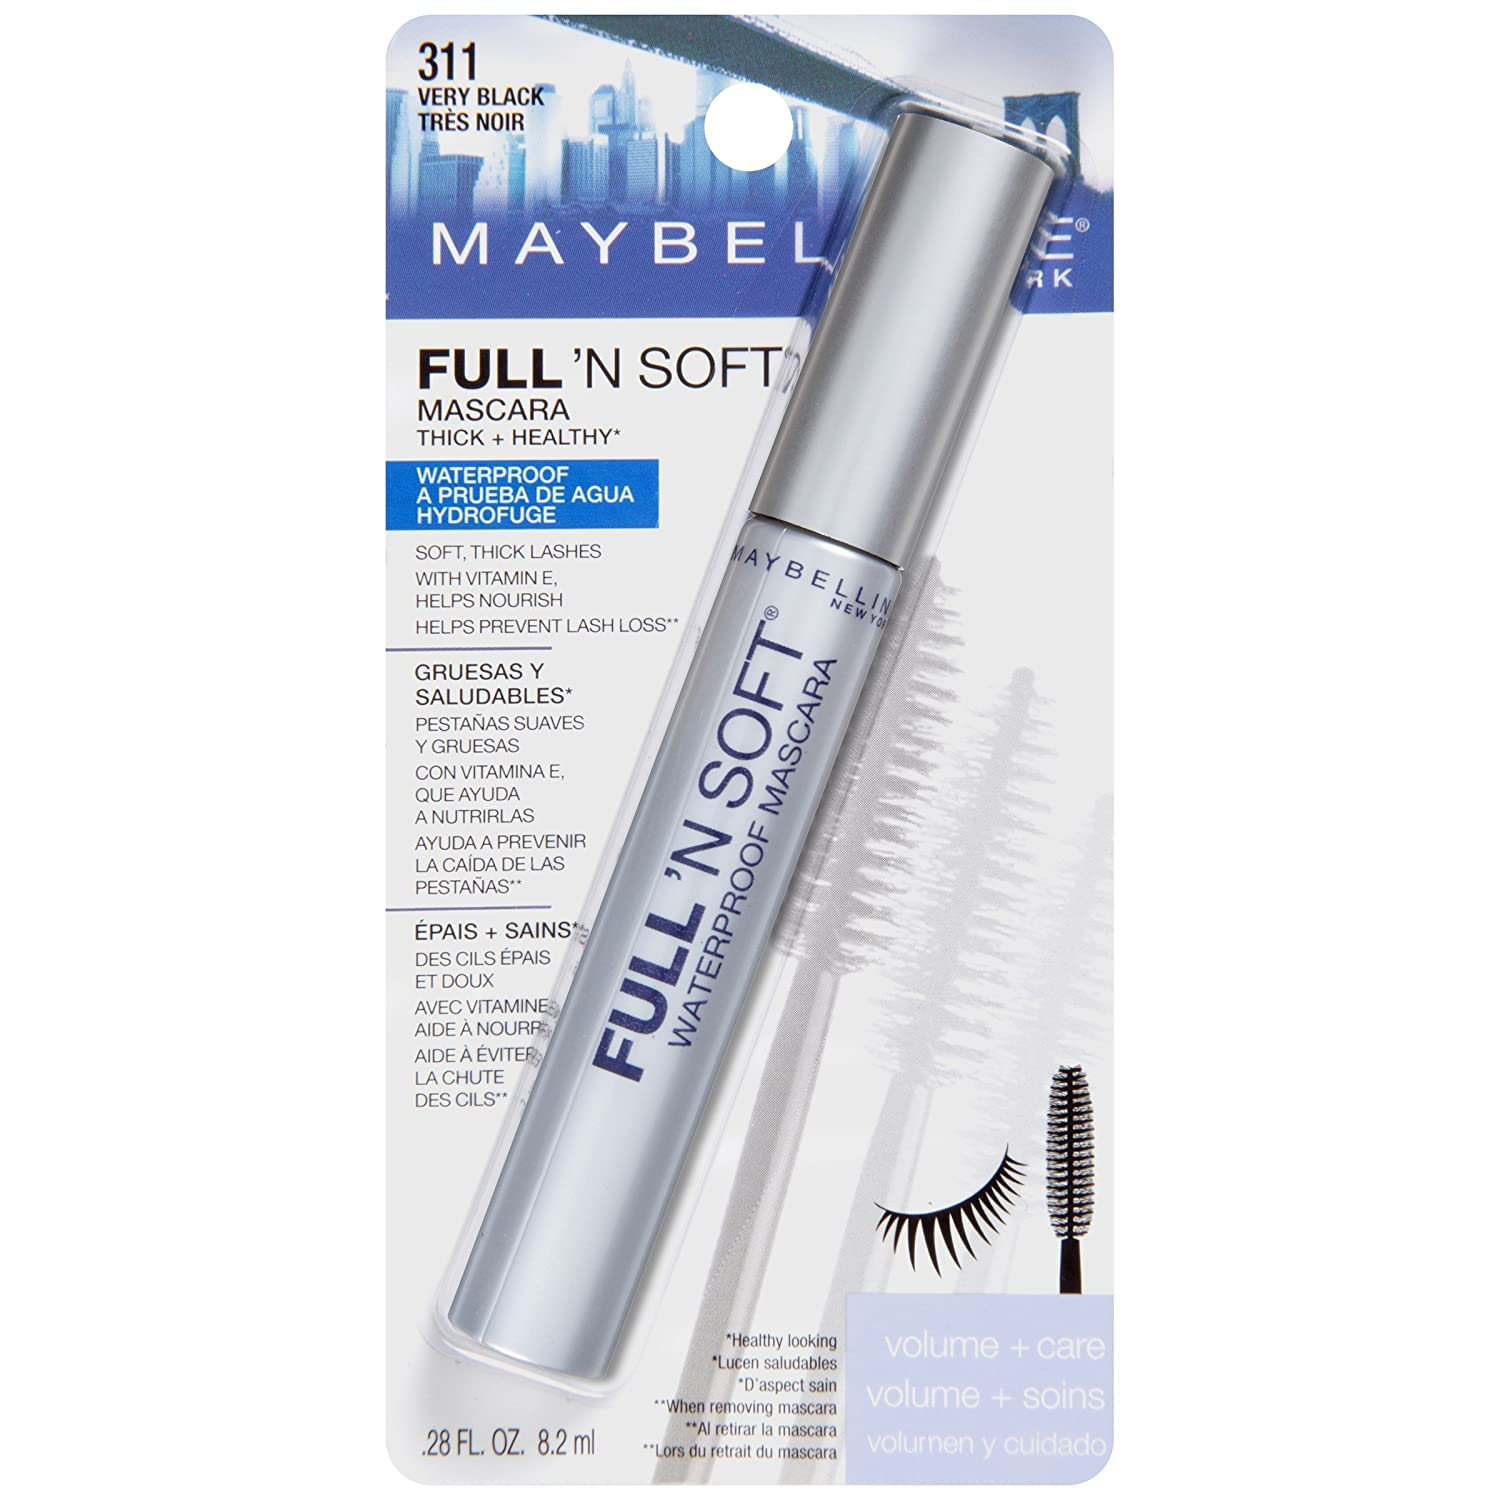 Maybelline Full 'N Soft Waterproof Mascara, Very Black [311], 0.28 oz (Pack of 6)